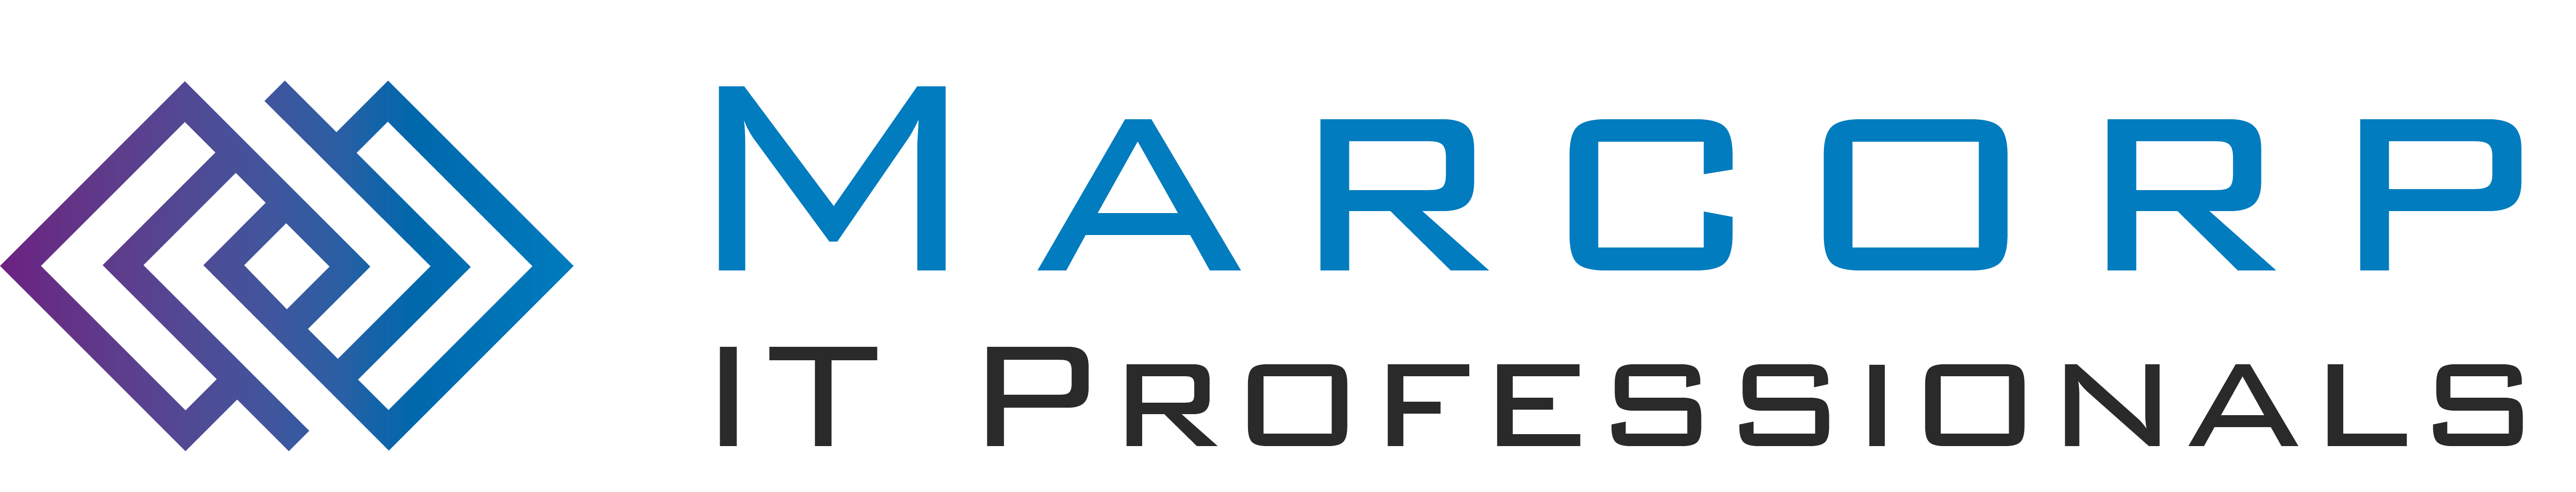 Marcorp IT Professionals